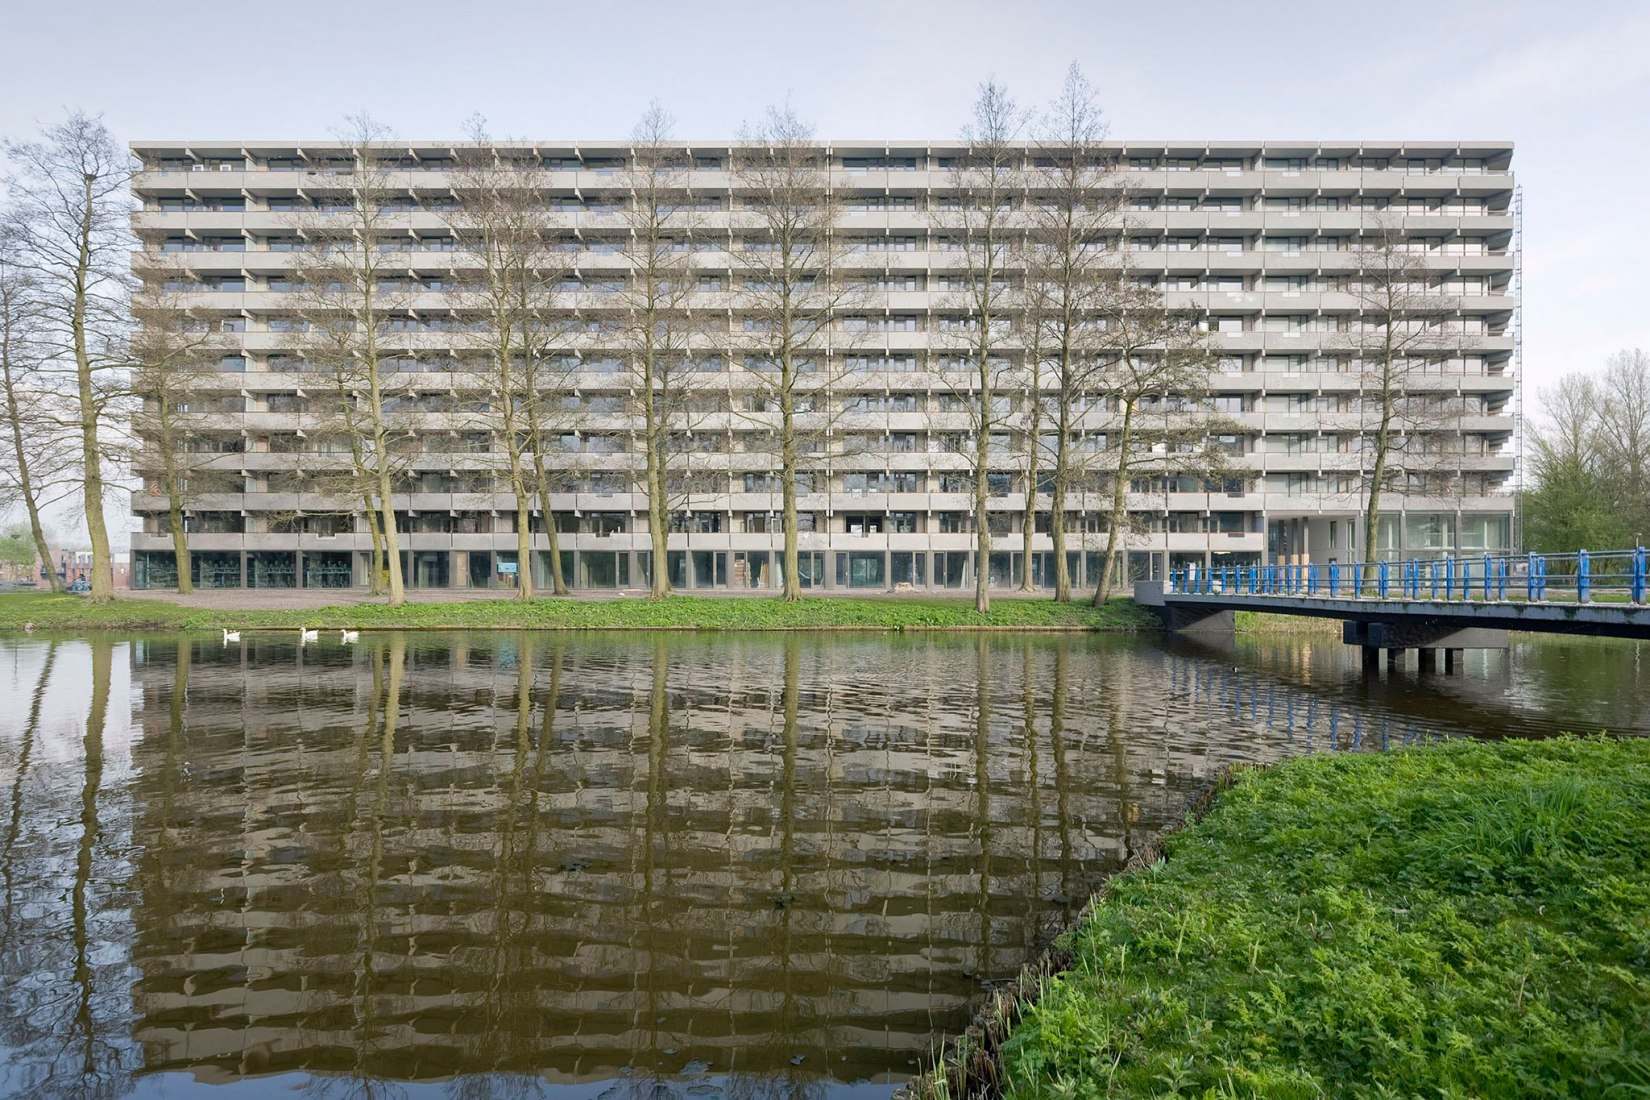 Bijlmermeer remodelation, deFlat Kleiburg by NL Architects and XVW architectuur. Photograph © Marcel van der Brug